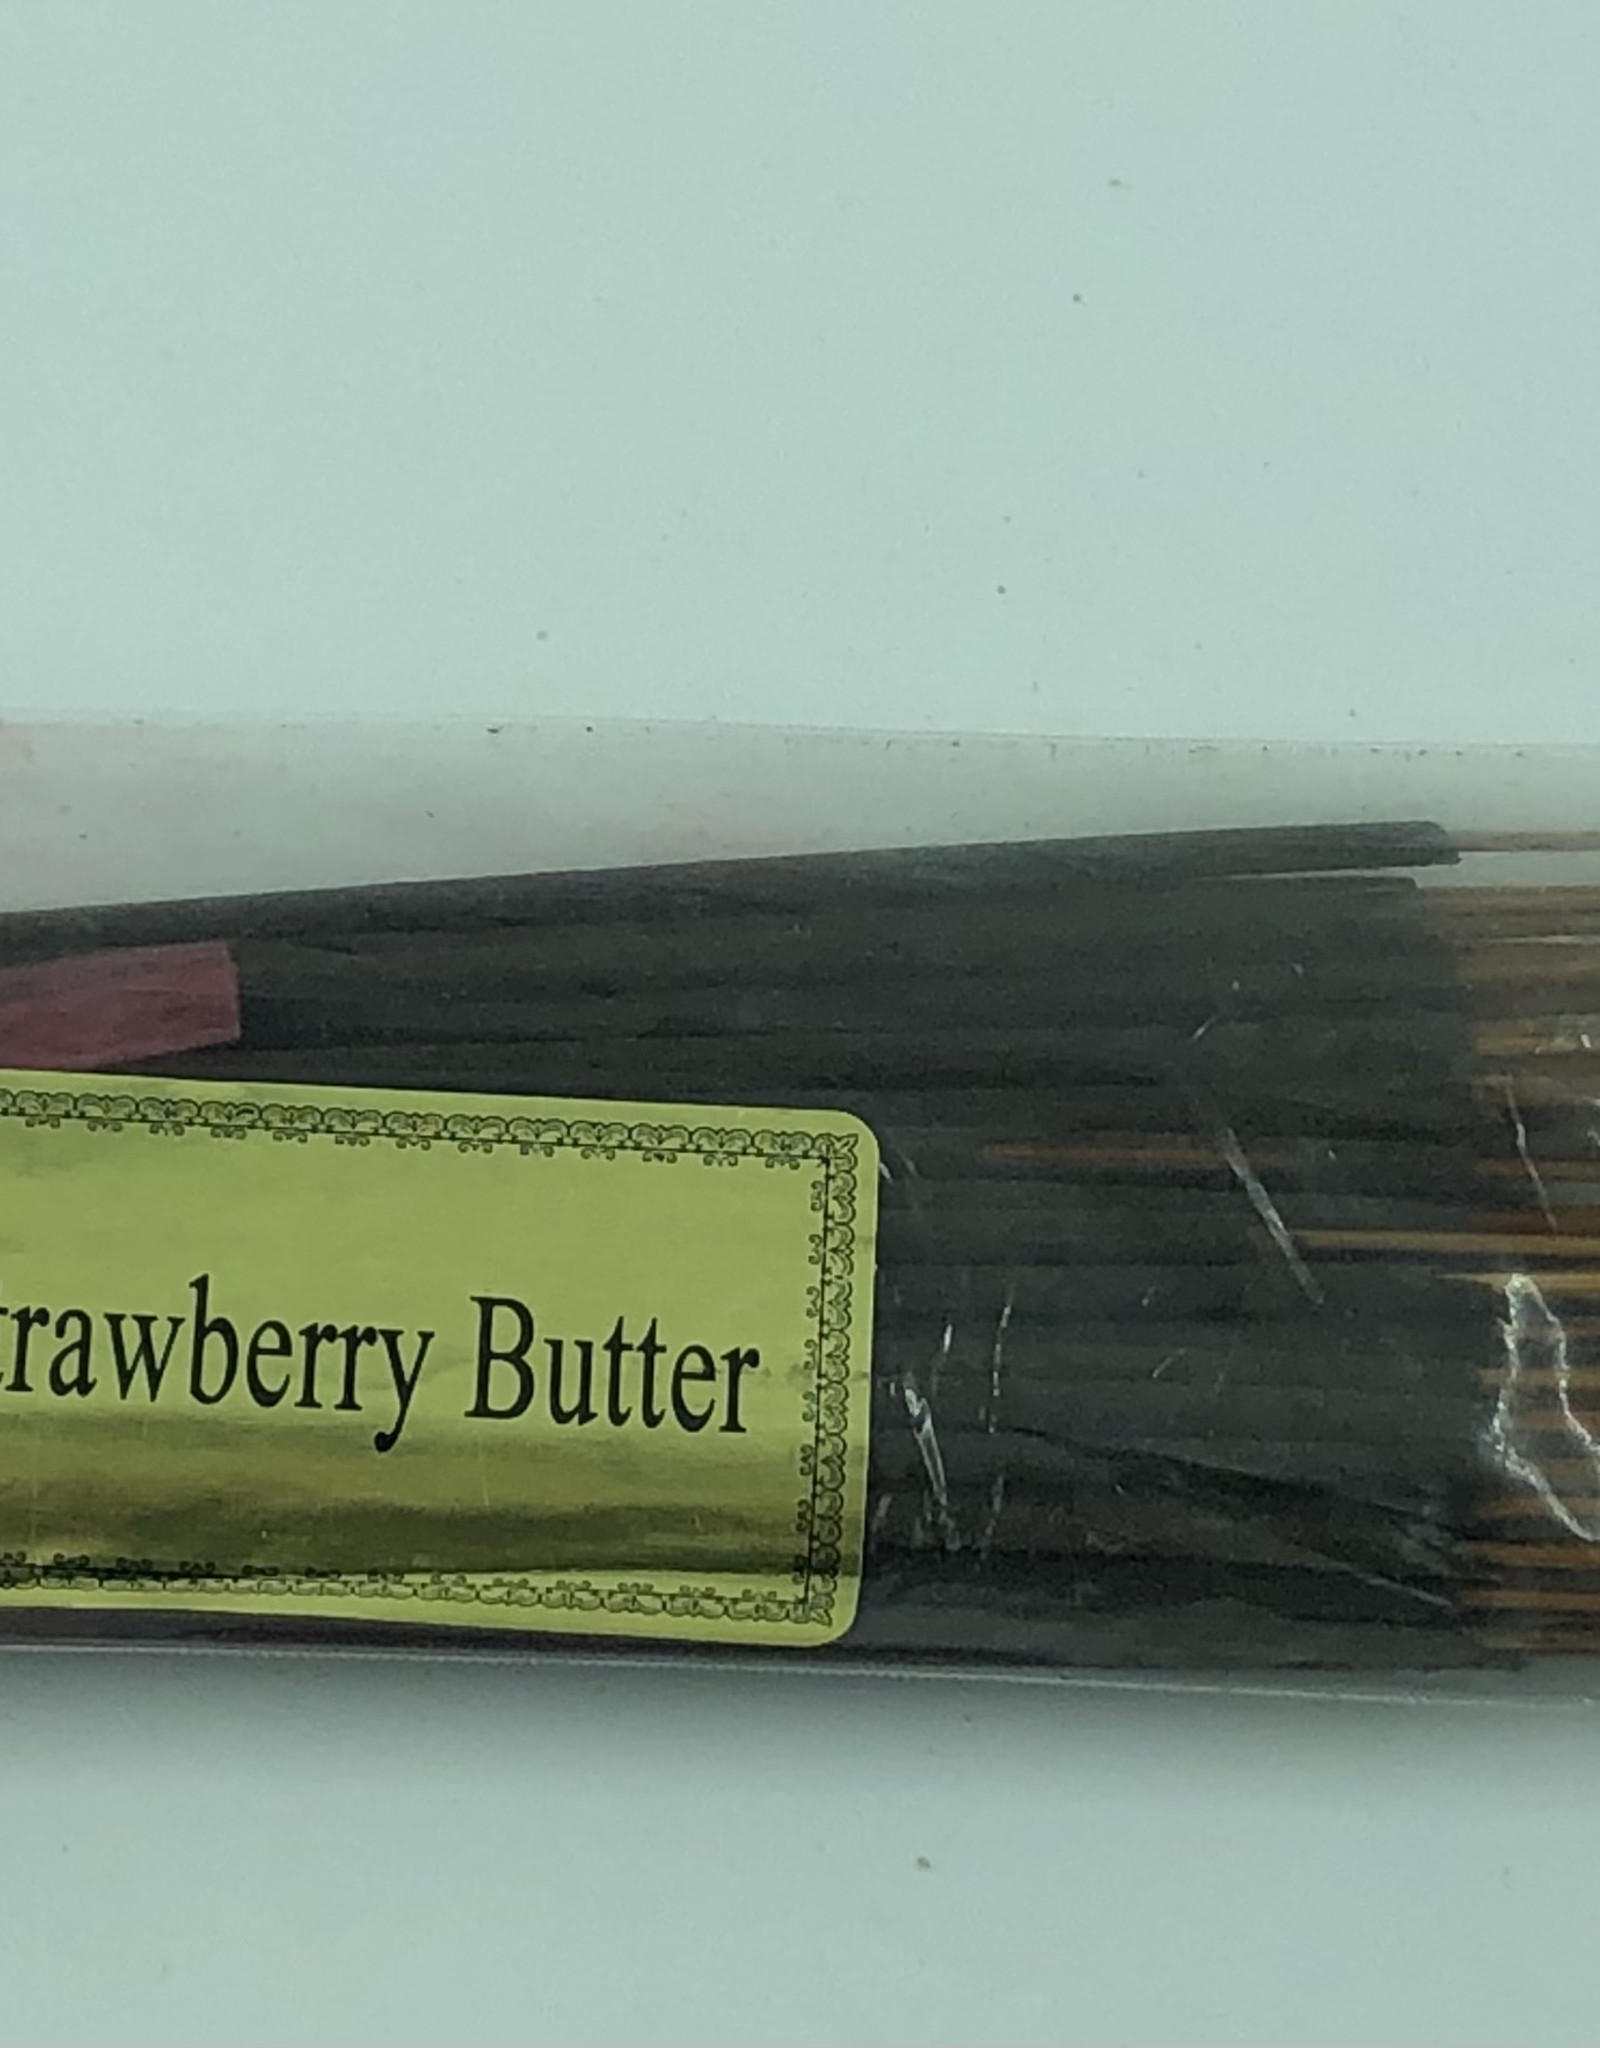 Strawberry Butter Hand Dipped Incense